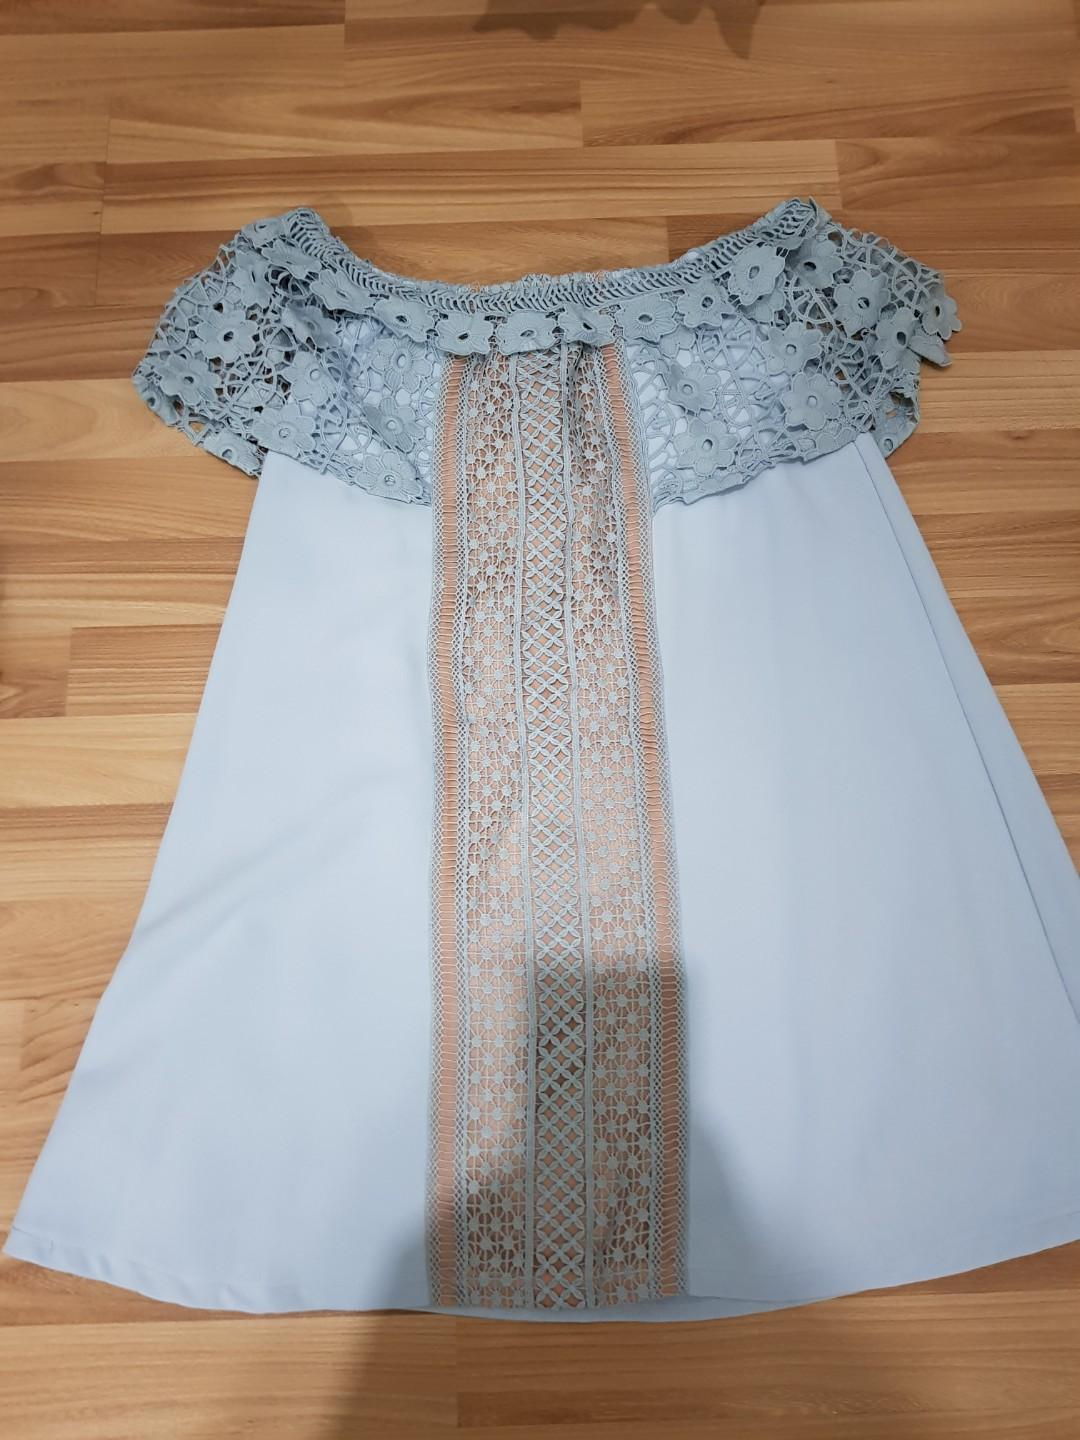 BNWOT LOVE AND BRAVERY LACE OFF SHOULDER DRESS SIZE XL